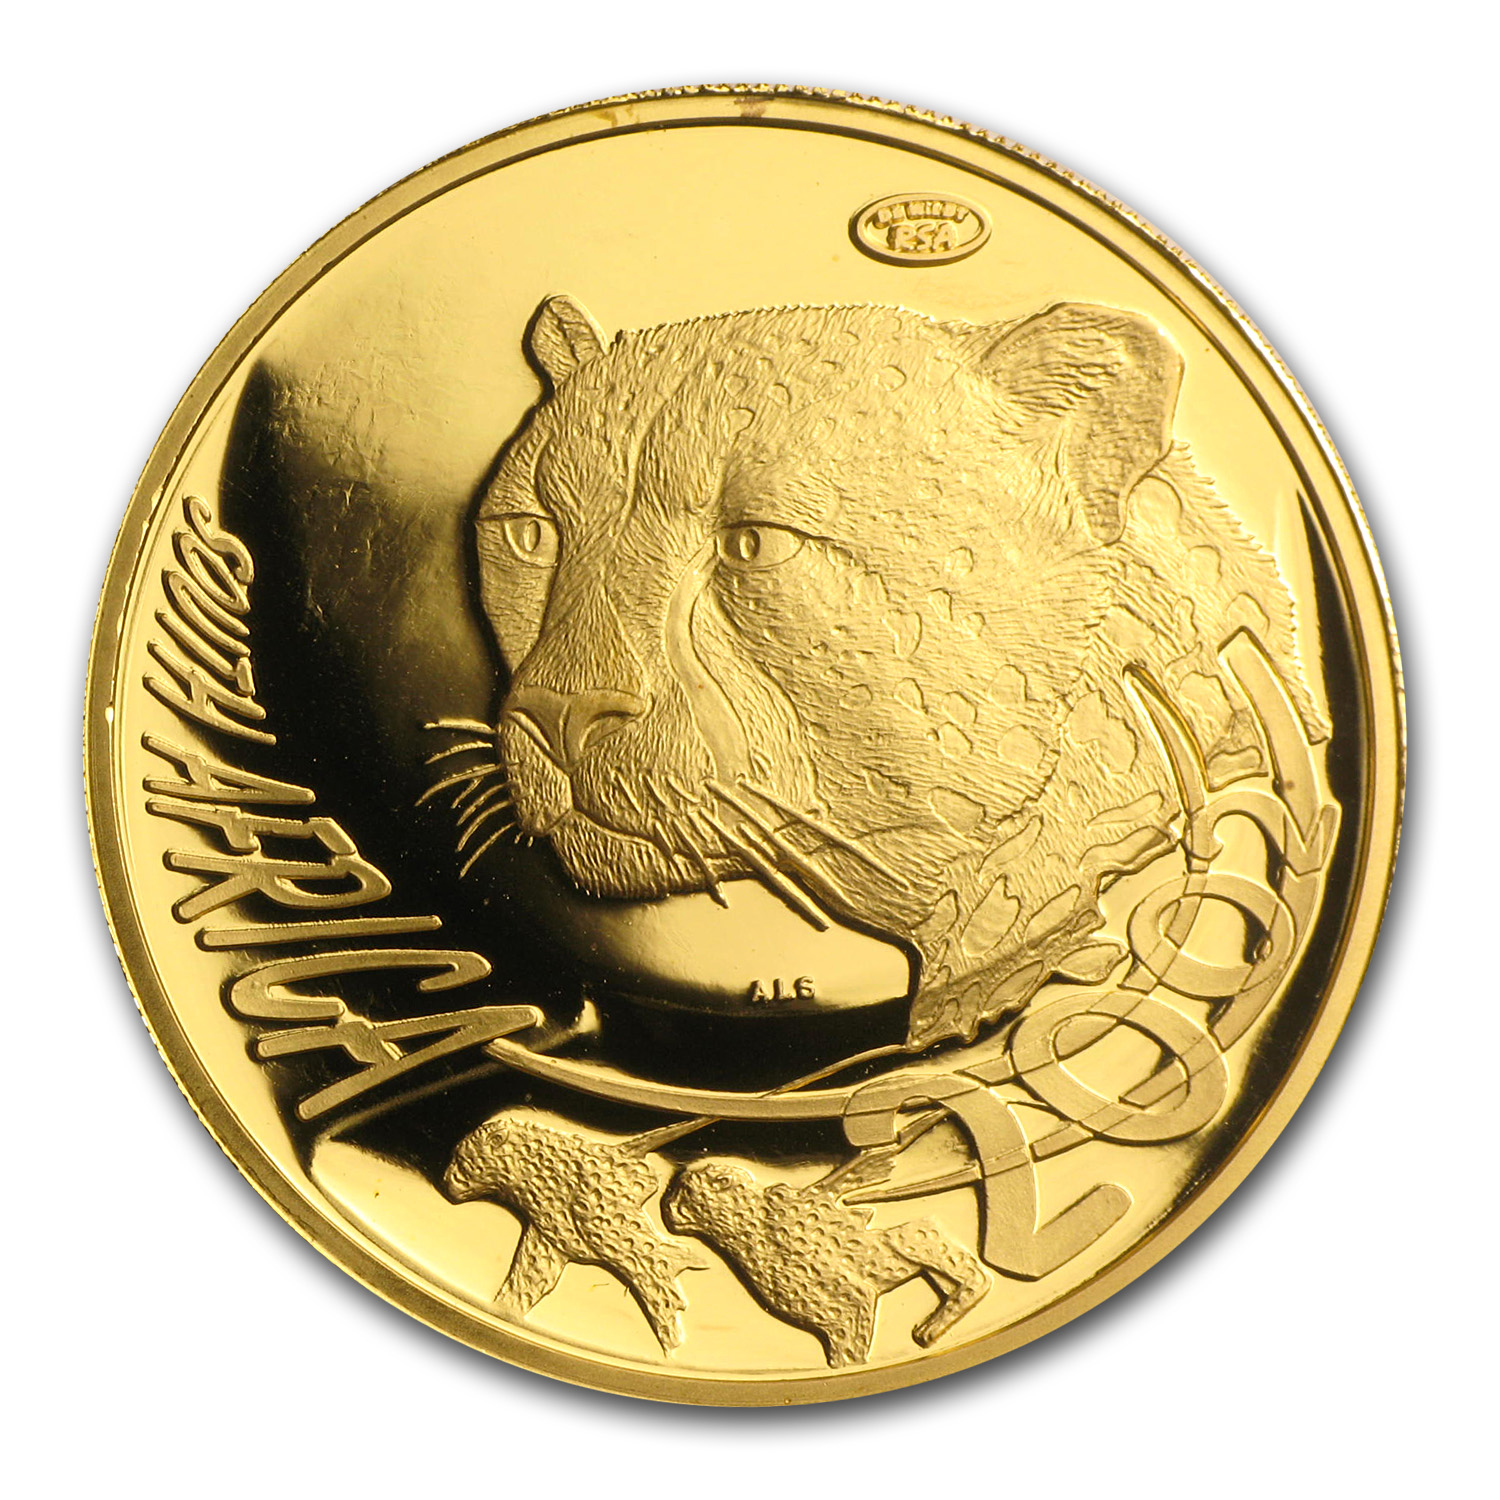 2002 1 oz Gold South African Natura (Cheetah) (Proof)